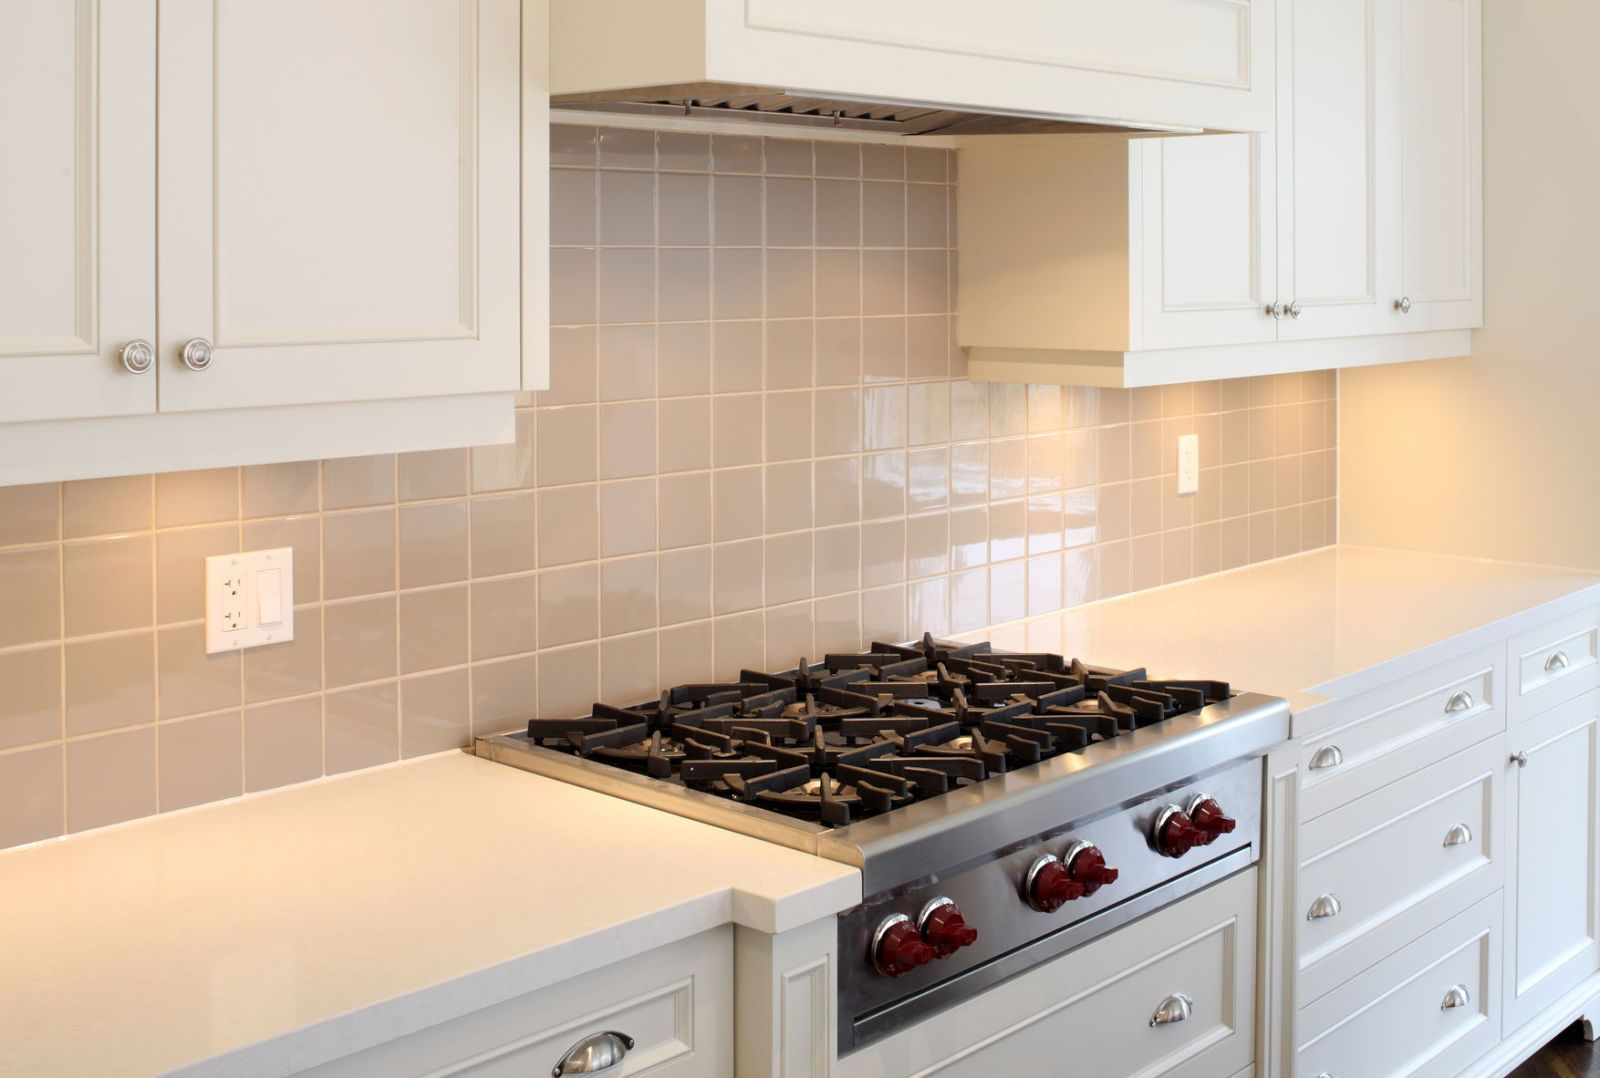 North American home kitchen tiles & Ask the expert: Jo Behari explains how to revamp kitchen tiles